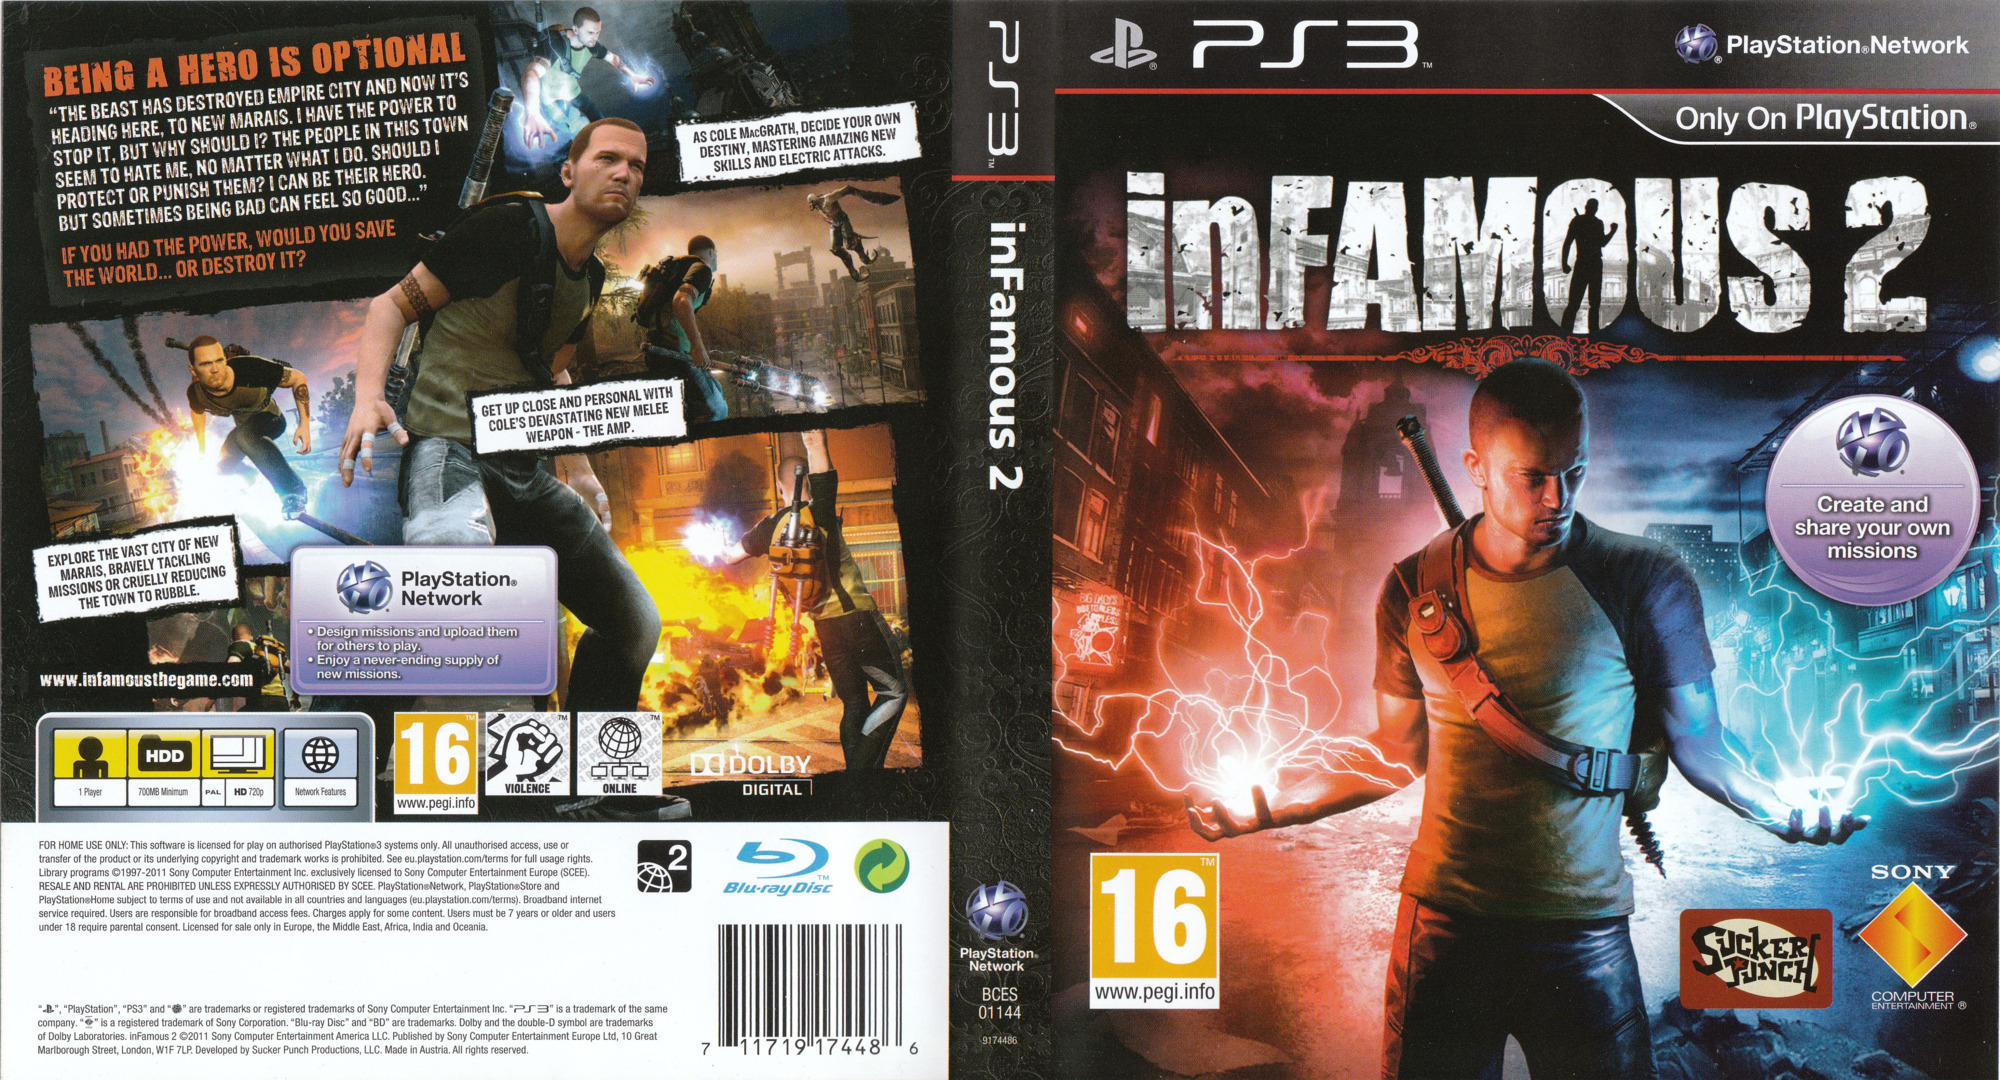 inFamous 2 PS3 coverfullHQ (BCES01144)